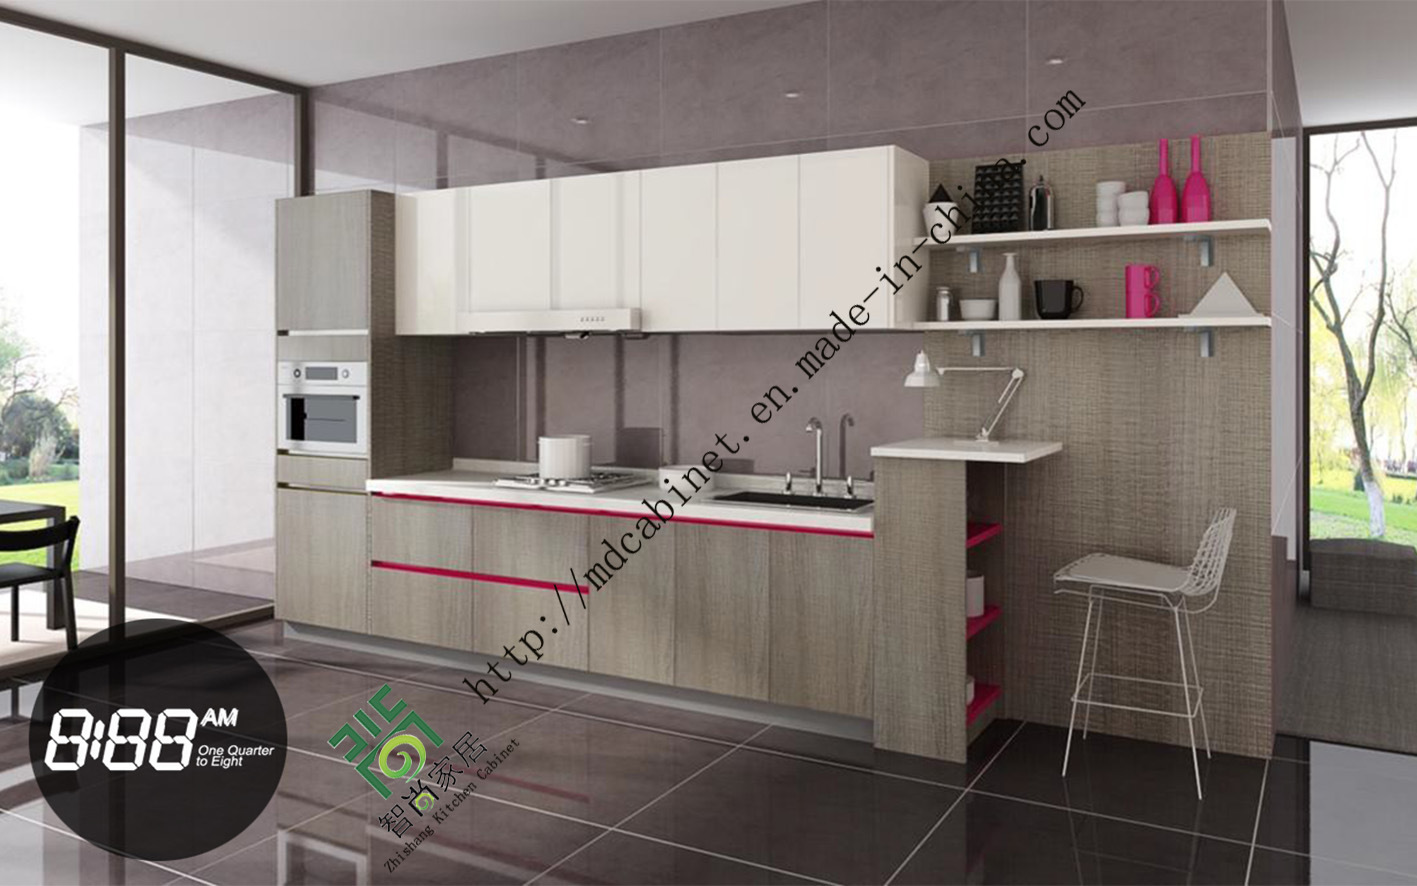 China horizontal modern uv kitchen cabinet brand names photos pictures made in - Kitchen cabinets brand names ...